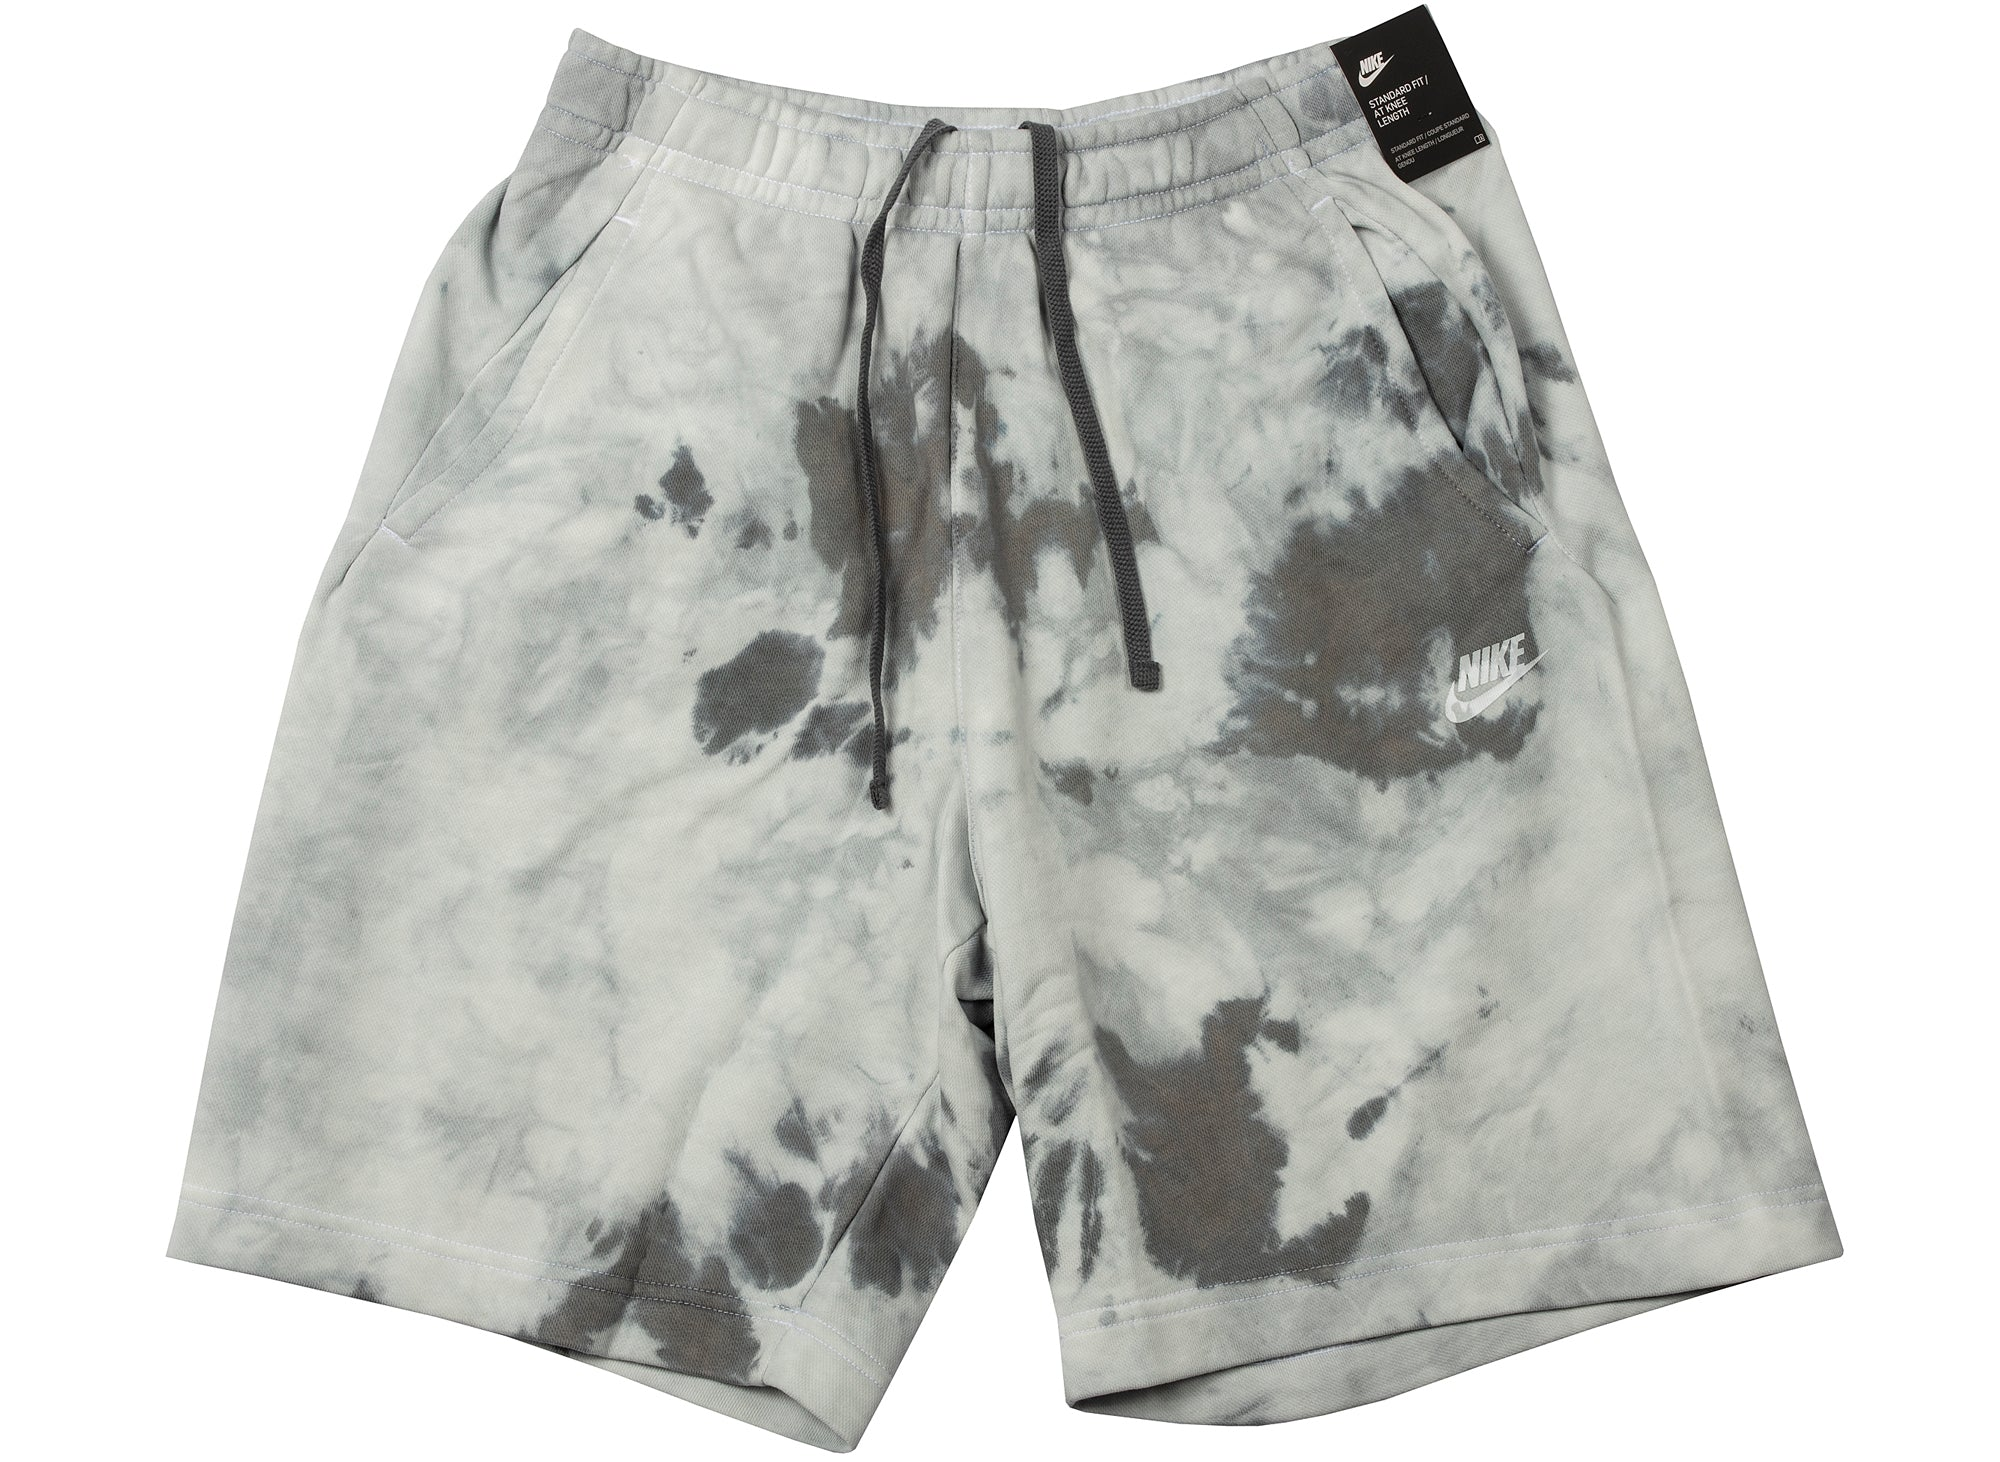 Nike Sportswear FT Dye Shorts in Grey xld